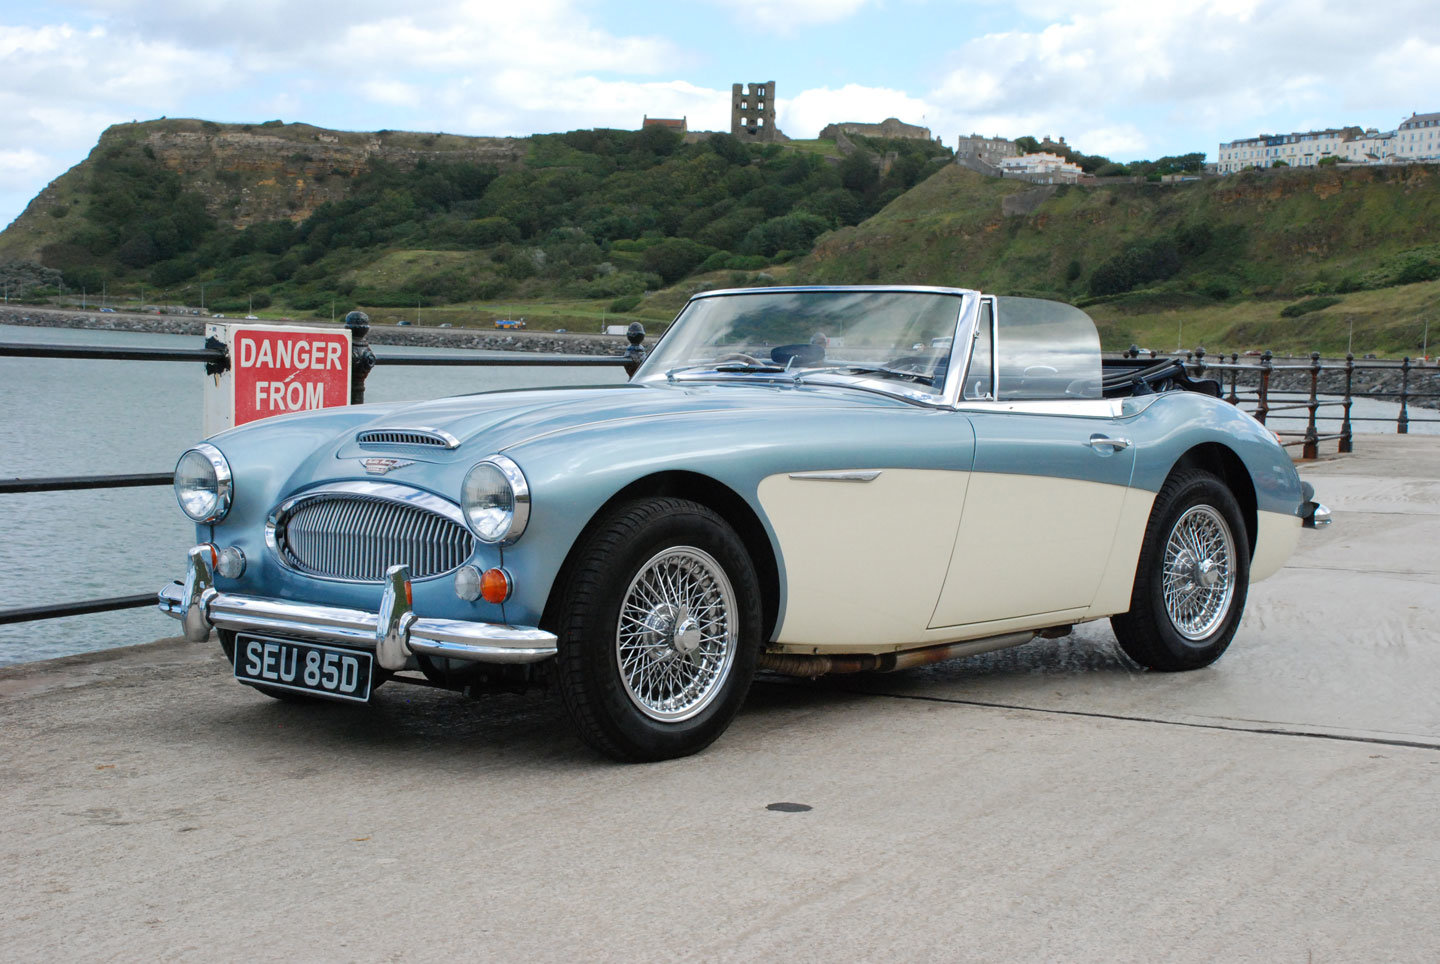 1966 Austin Healey 3000 MK 3 BJ8 phase 2 For Sale (picture 8 of 10)